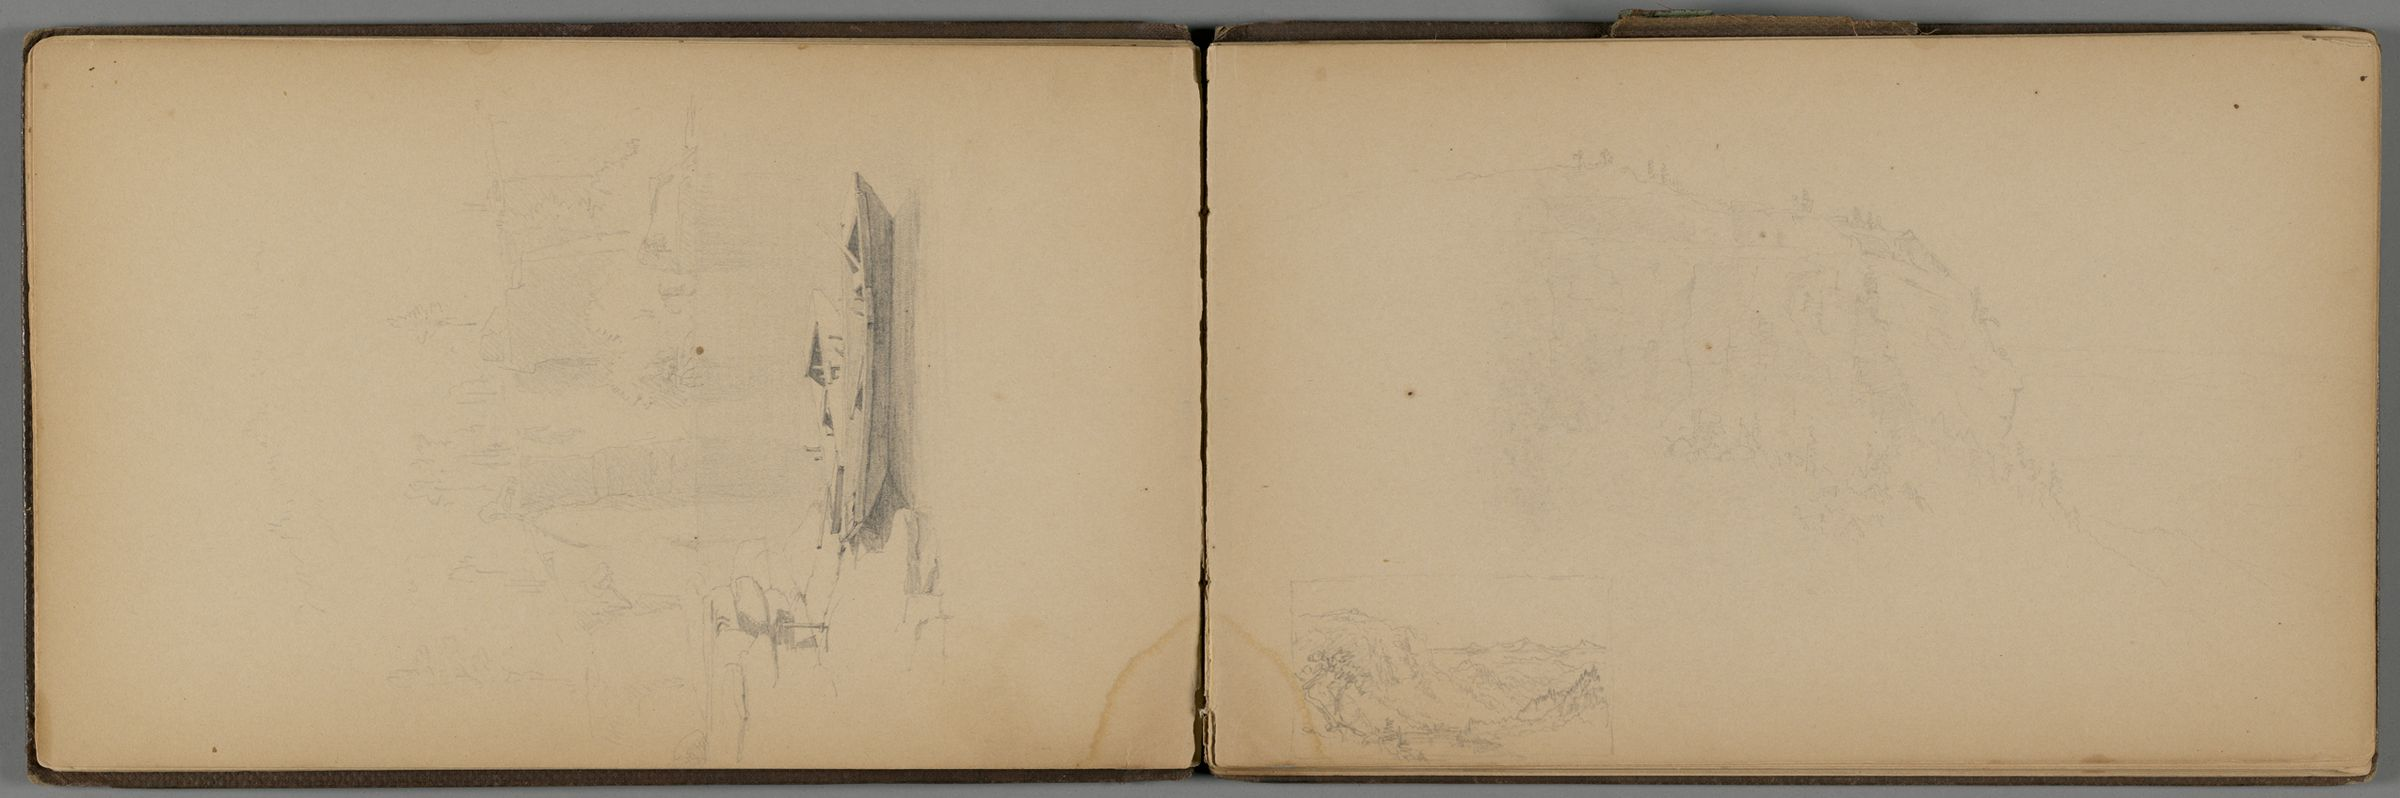 Two Landscapes; Verso: Cliff Scene With Figure